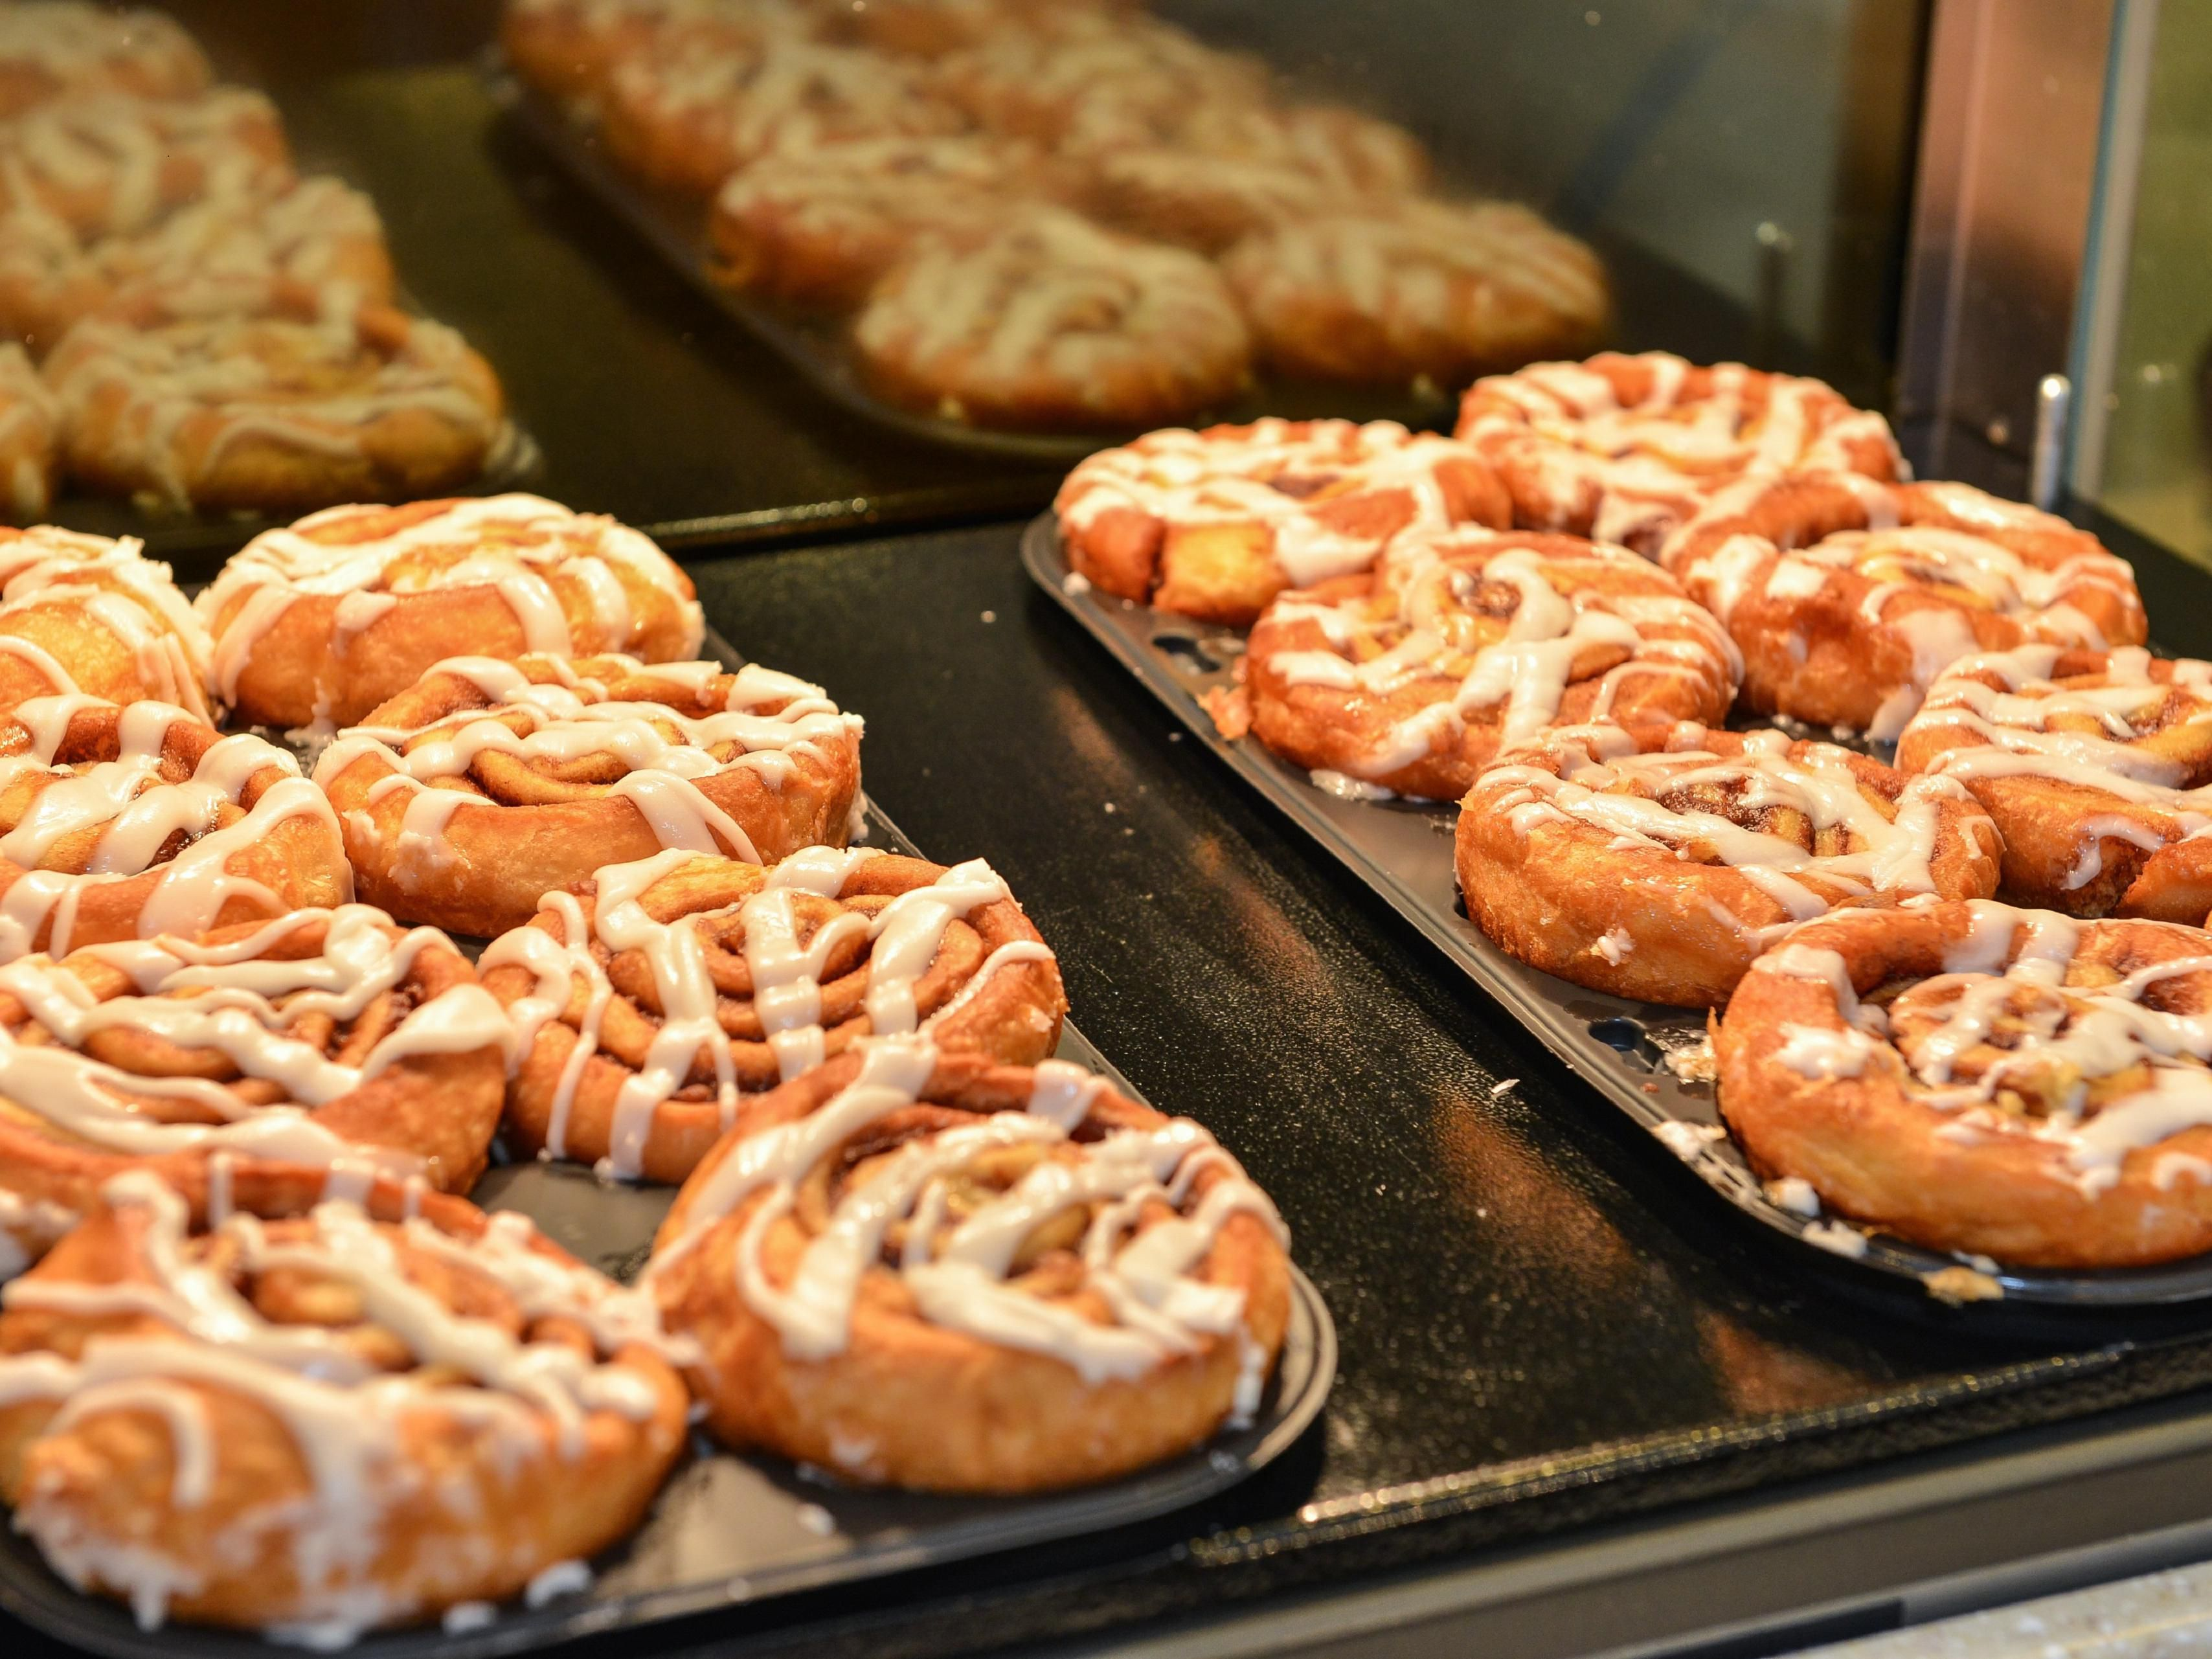 Our signature warm cinnamon rolls are served daily!